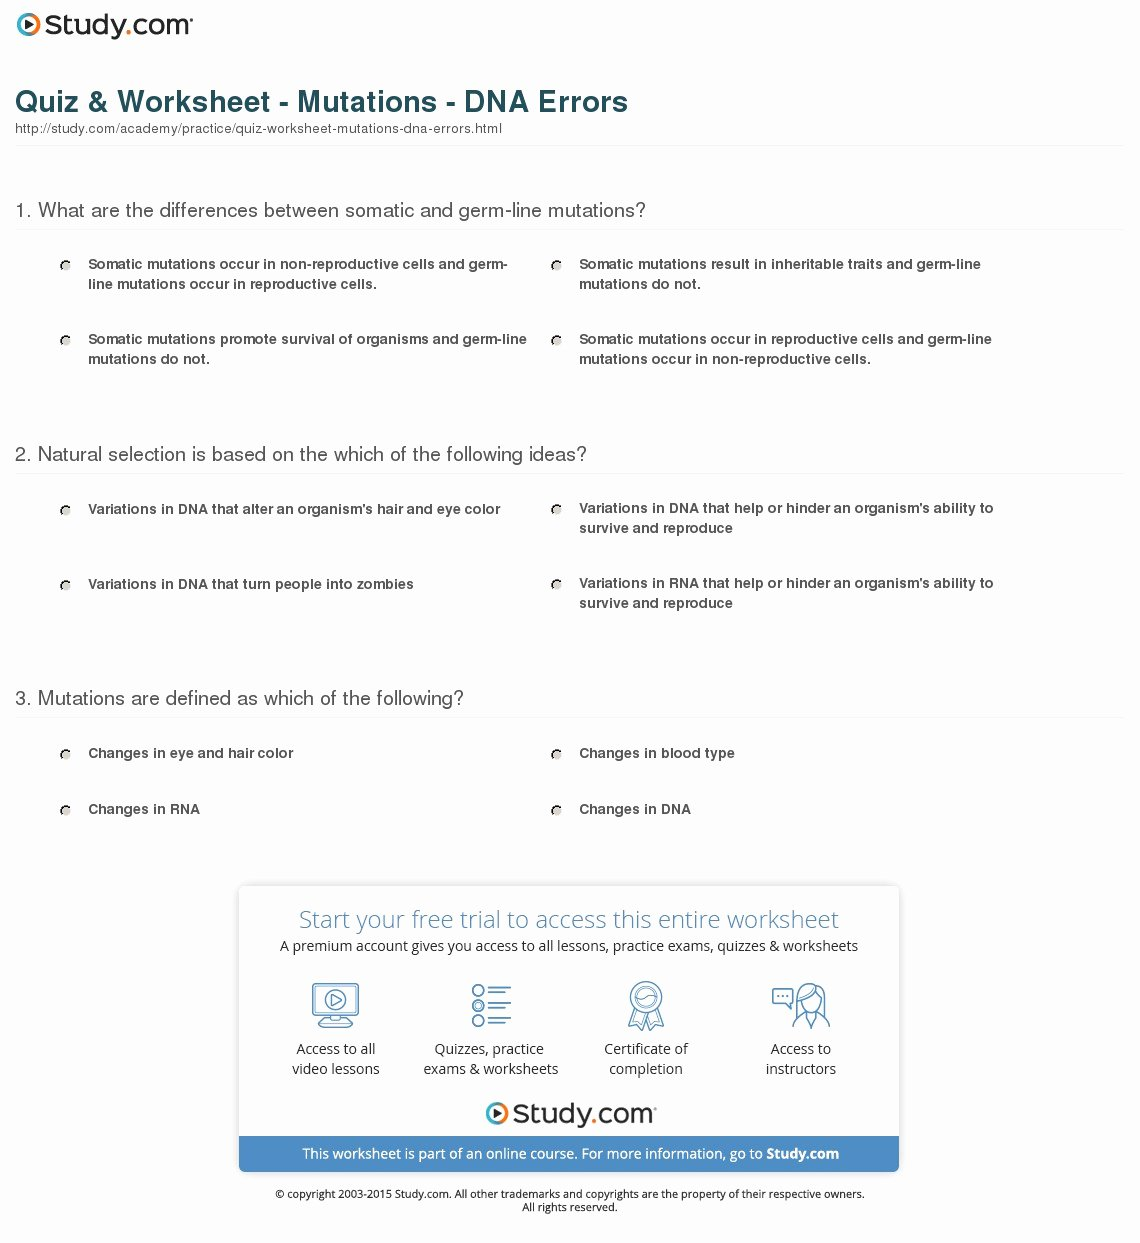 Mutations Worksheet Answer Key Inspirational Quiz & Worksheet Mutations Dna Errors